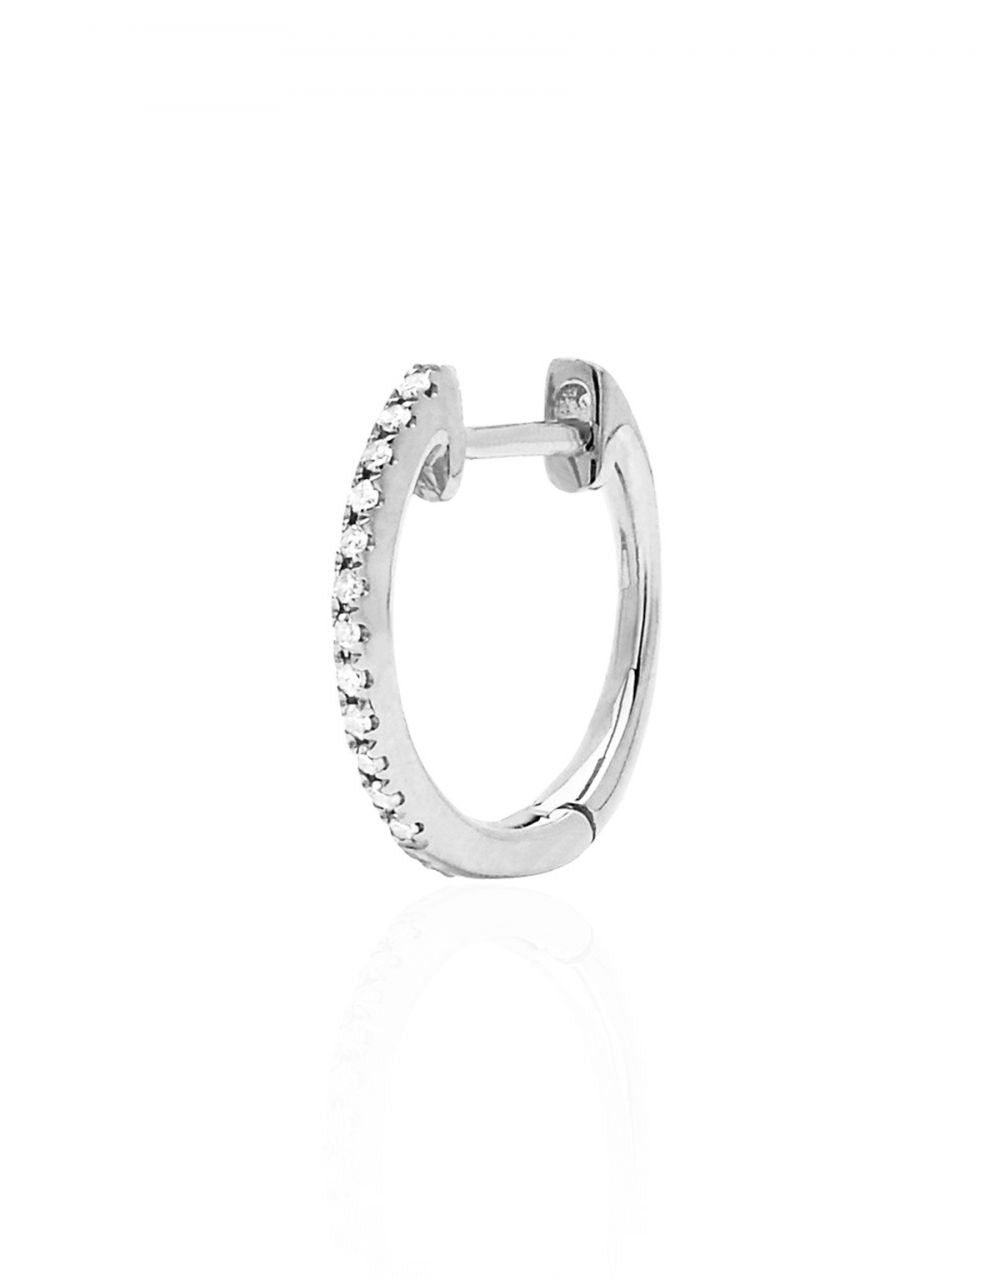 Mini Diamond Hoop Piercing<br /><i><small>14K White Gold with White Diamonds</small></i><br /> - Eddera